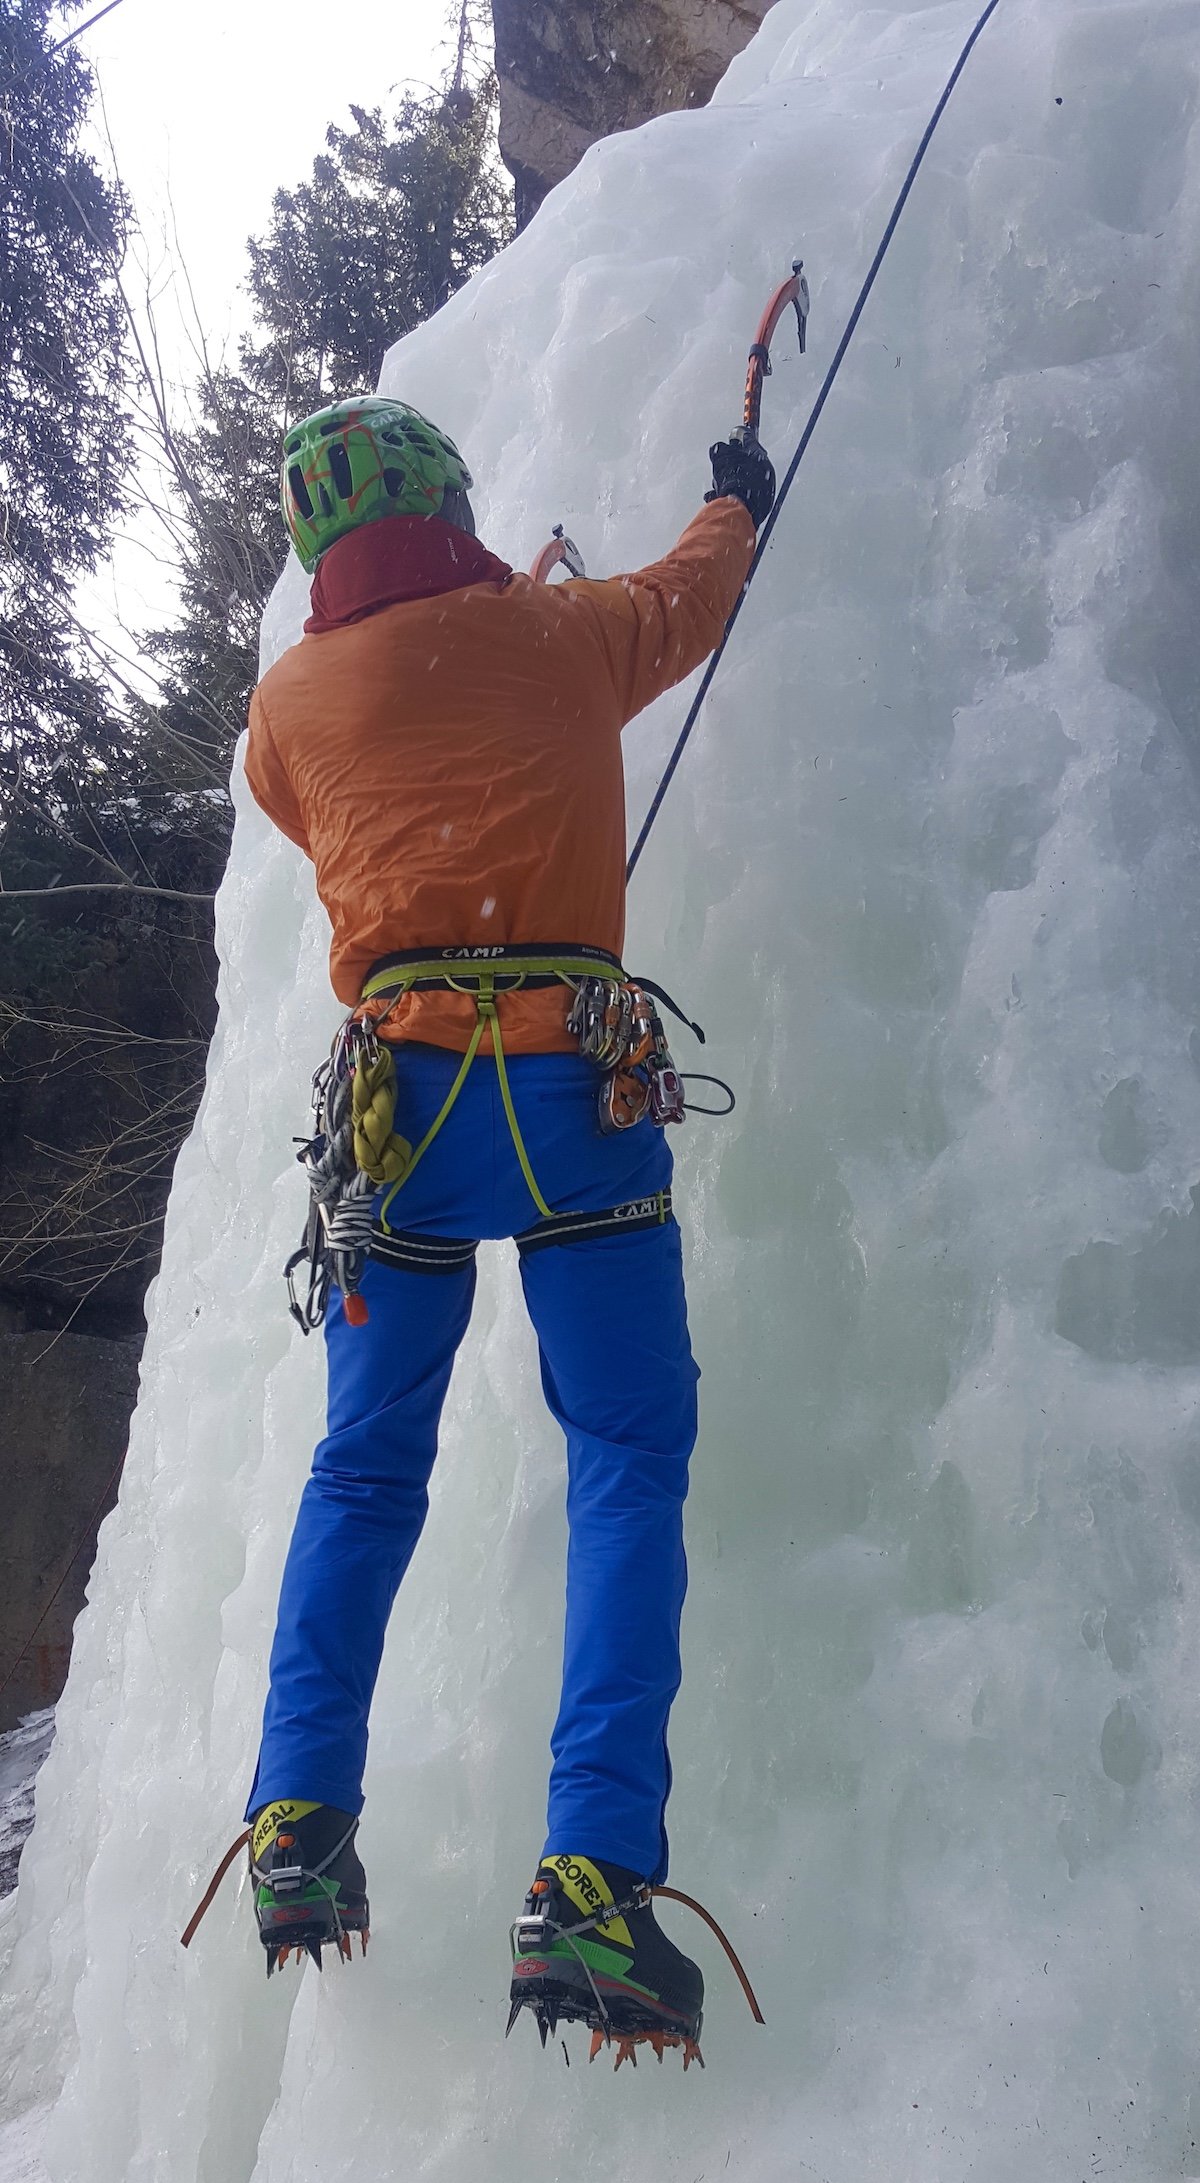 Lewis climbs vertical ice in Rocky Mountain National Park with the Boreal Stetinds. [Photo] Mike Lewis collection